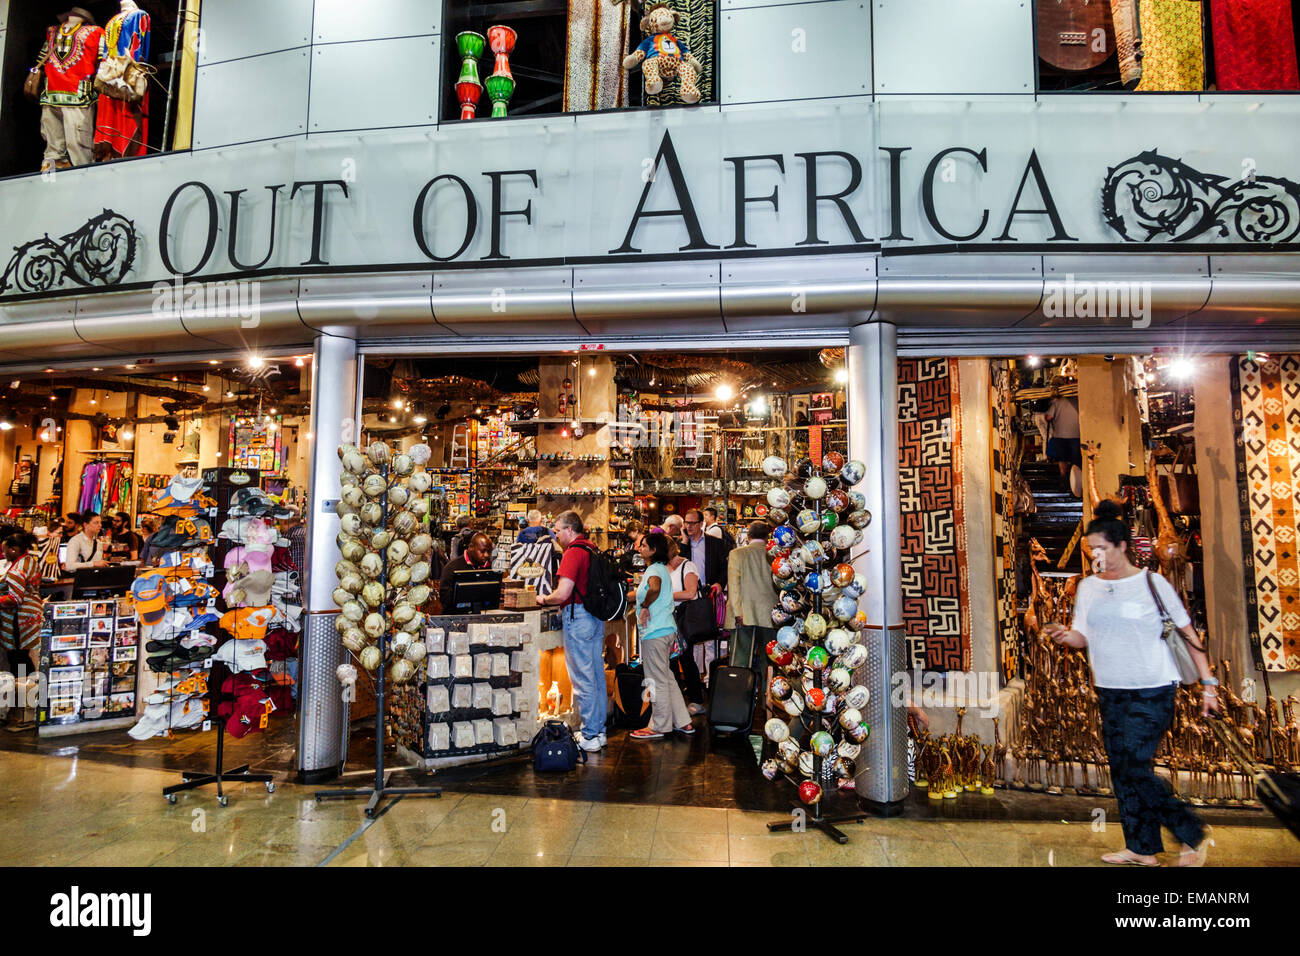 Due South Craft Route; See also: South Africa's arts and crafts; Fashion and finery. South Africa's sophisticated clothing industry manufactures garments ranging from high fashion to well-made safari clothing and sportswear, all of which are reasonably priced.